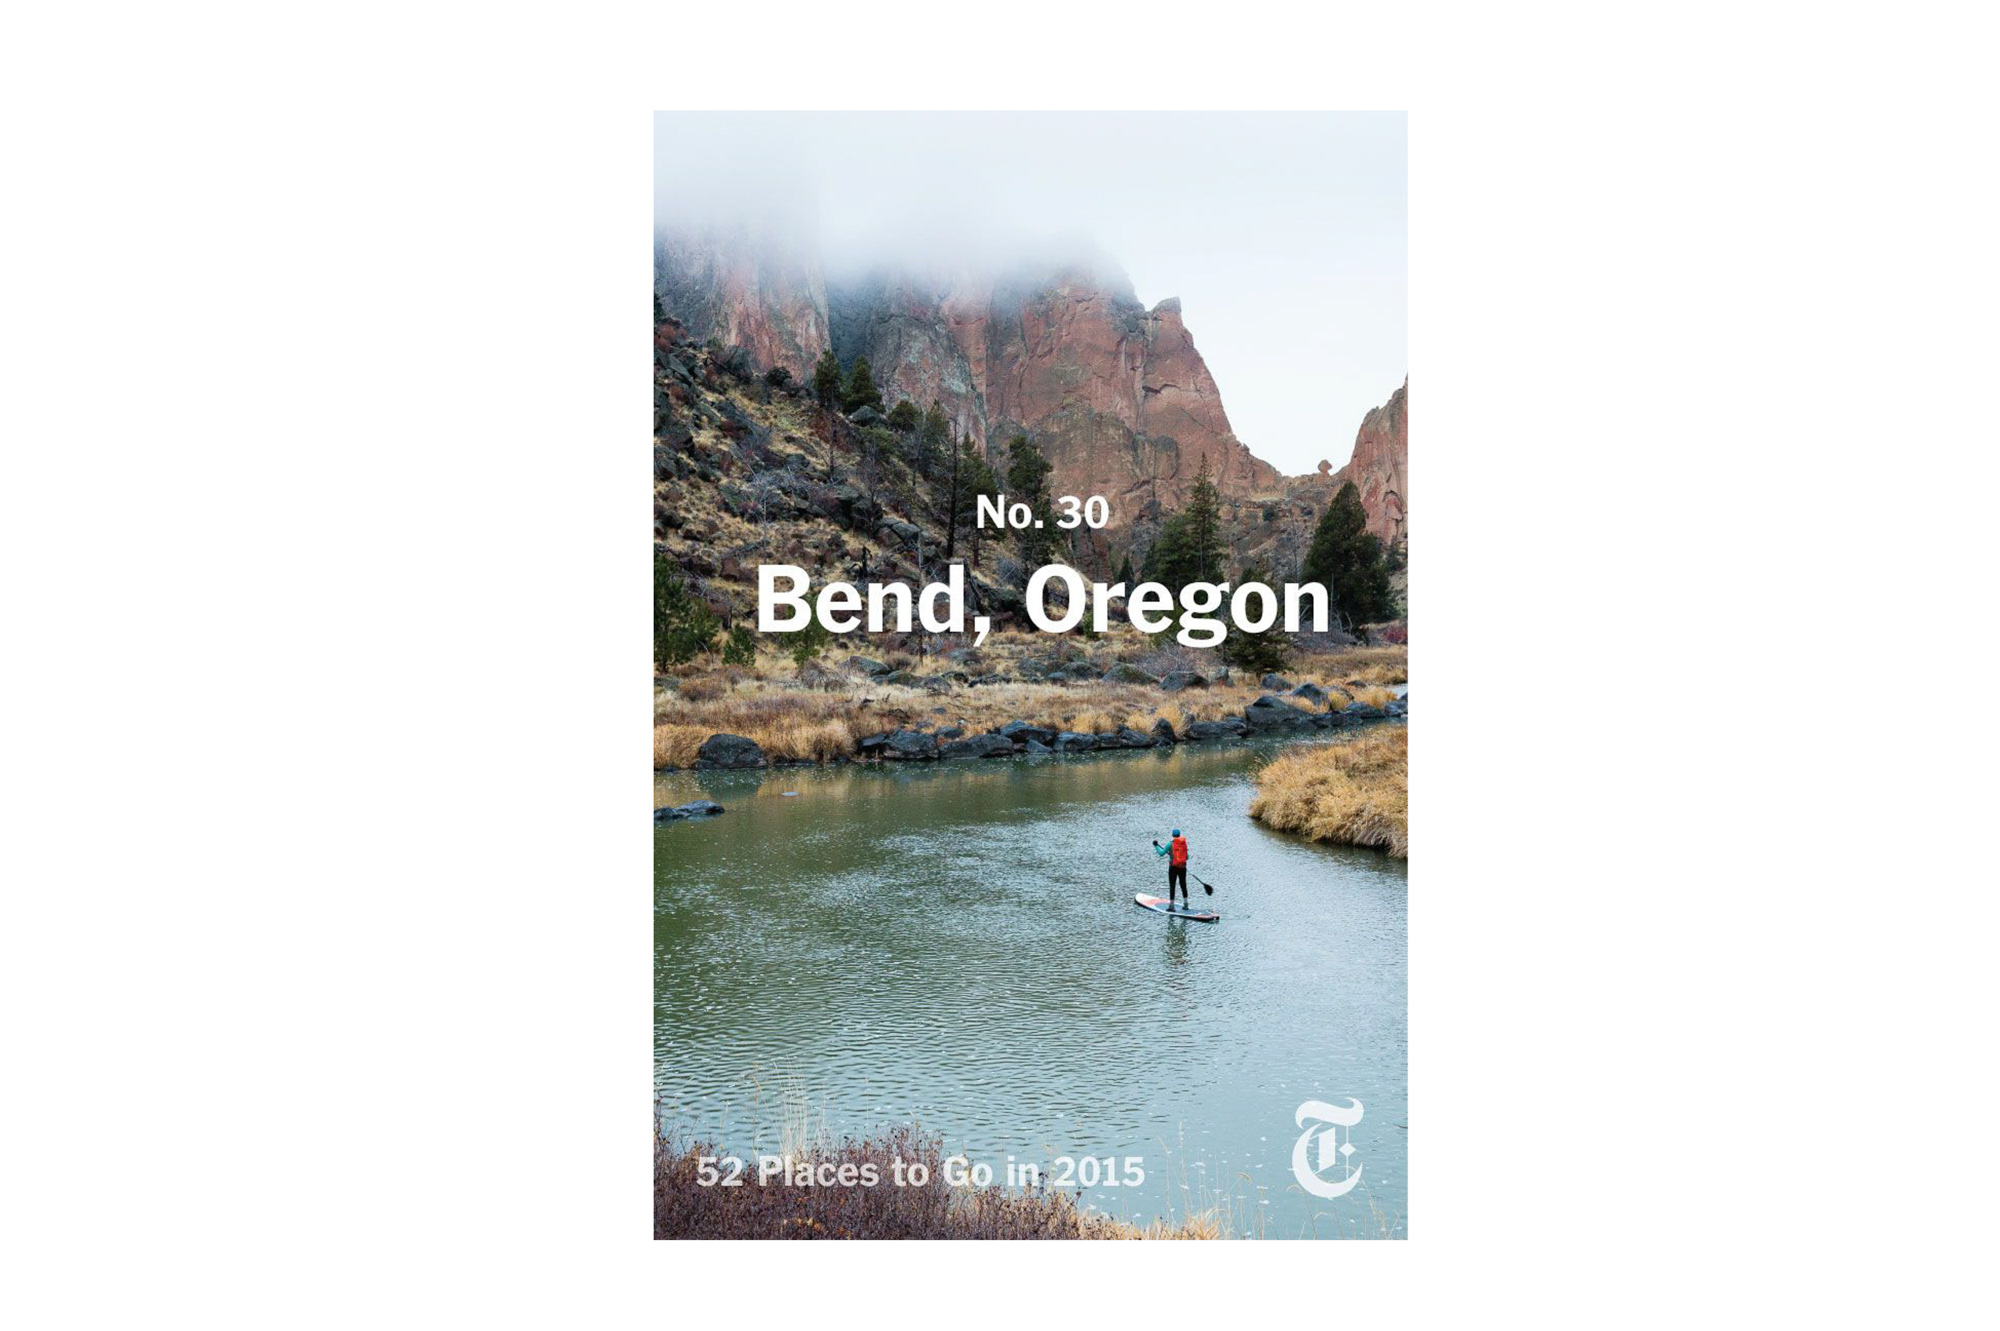 new-york-times-best-places-to-travel-bend-oregon.JPG